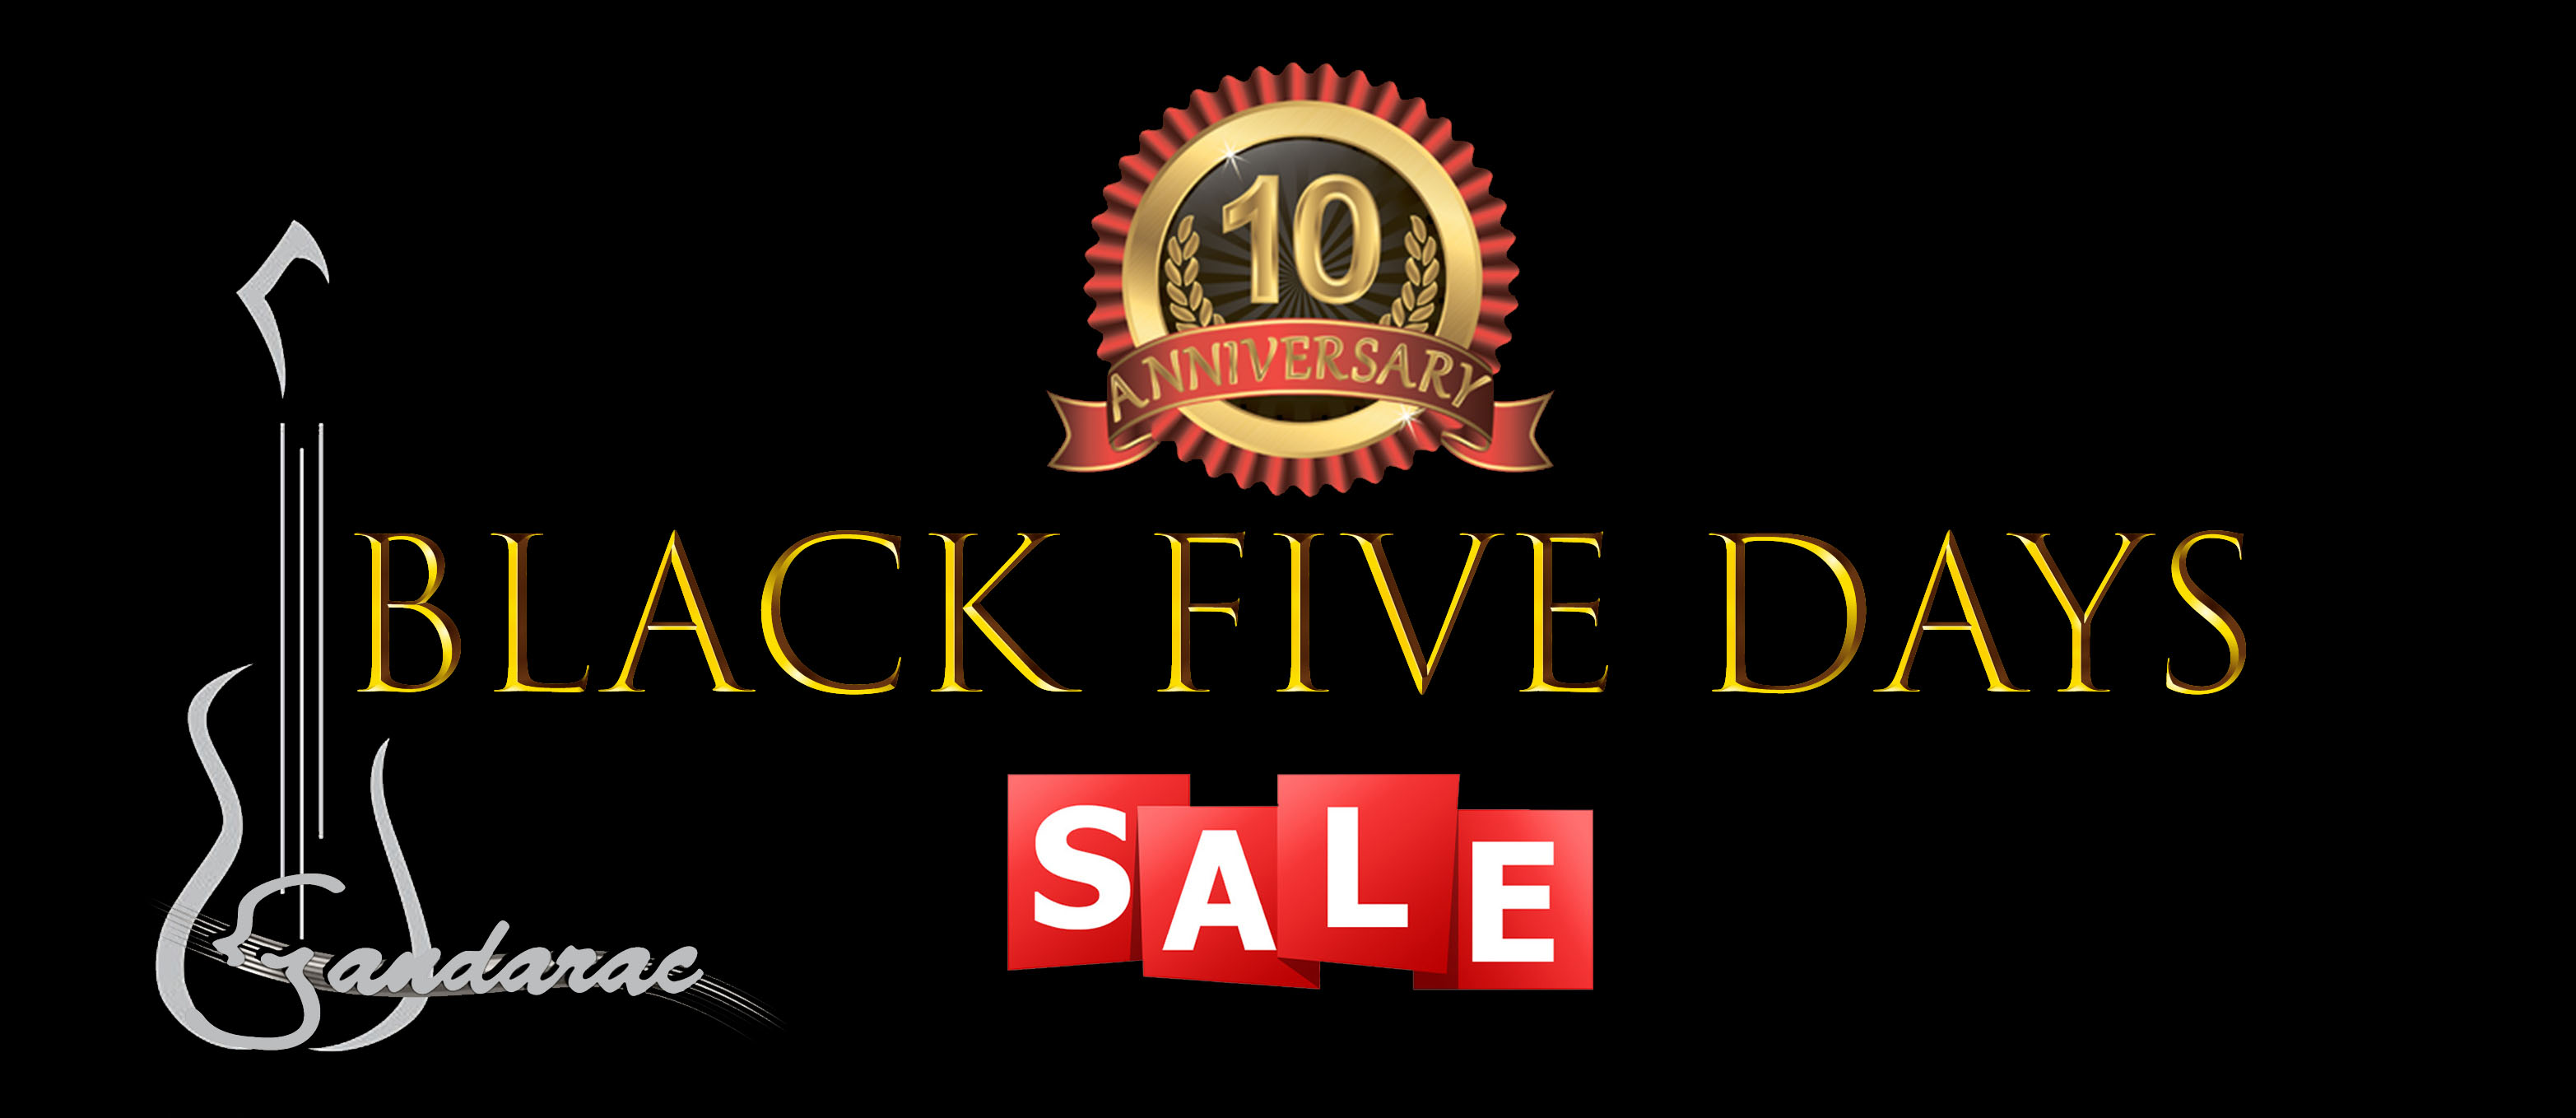 banner-black-five-day-sale (002)